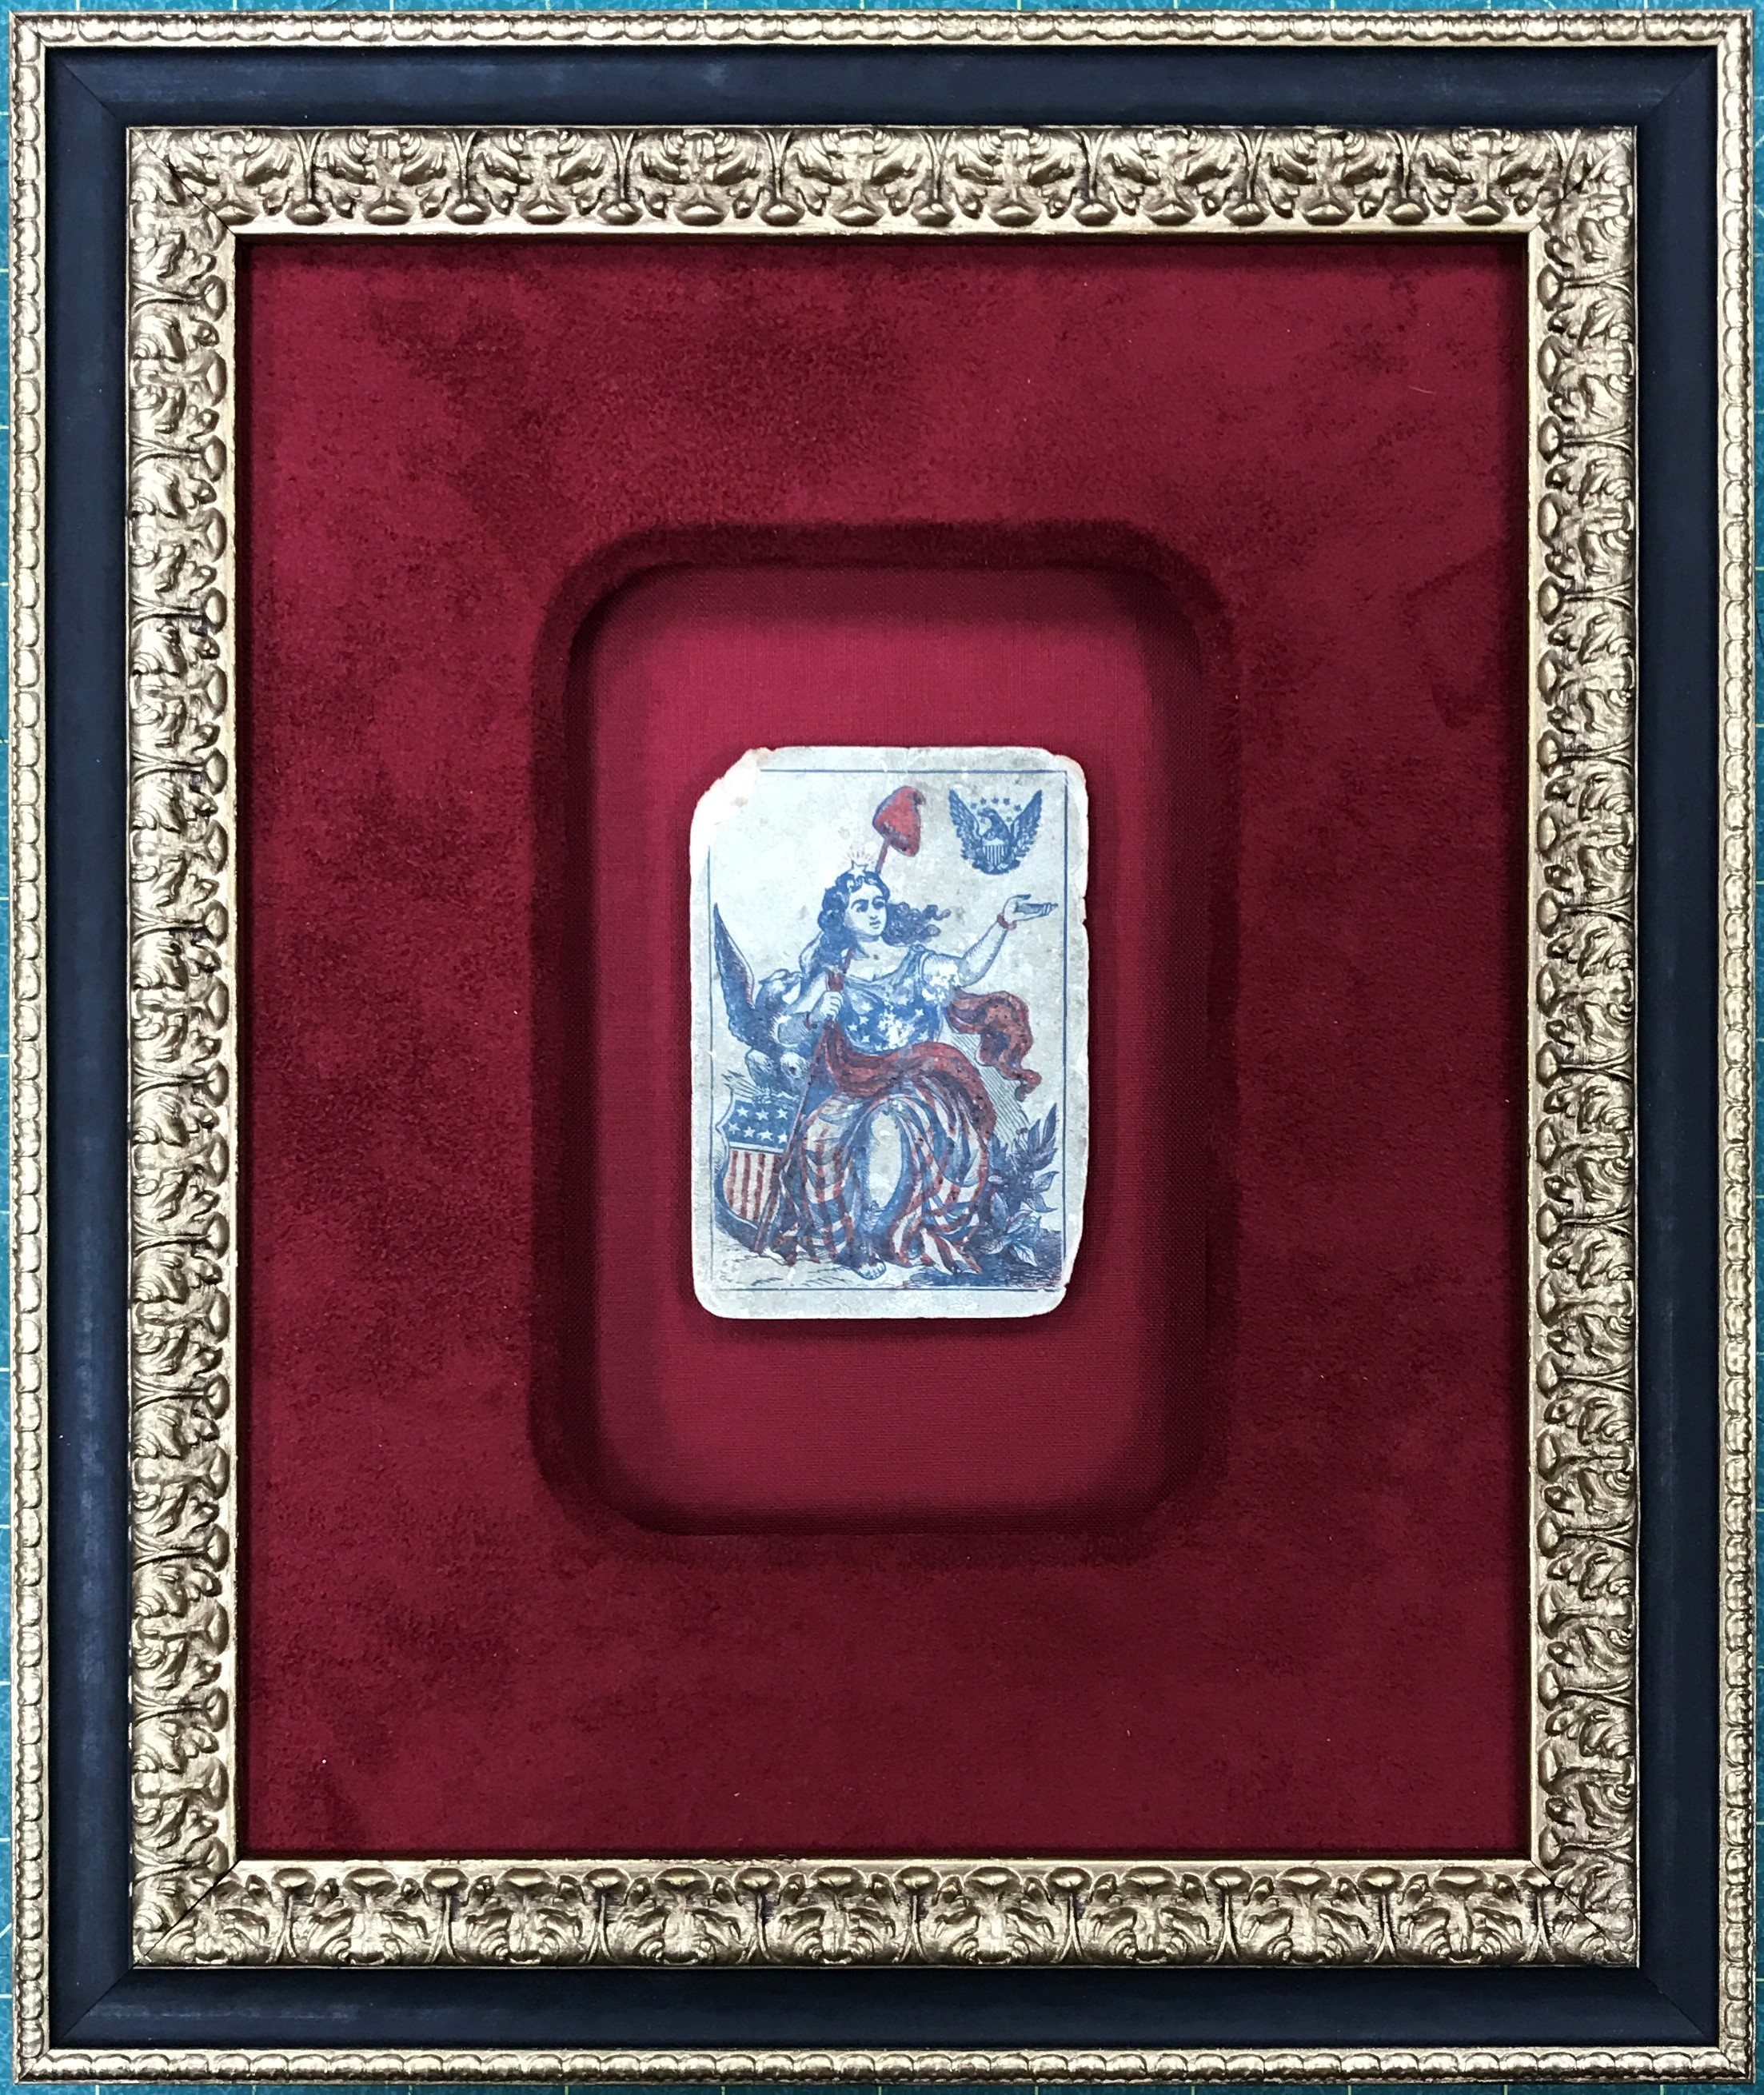 7-antique-playing-card-framed-for-the-house-of-cards.jpg